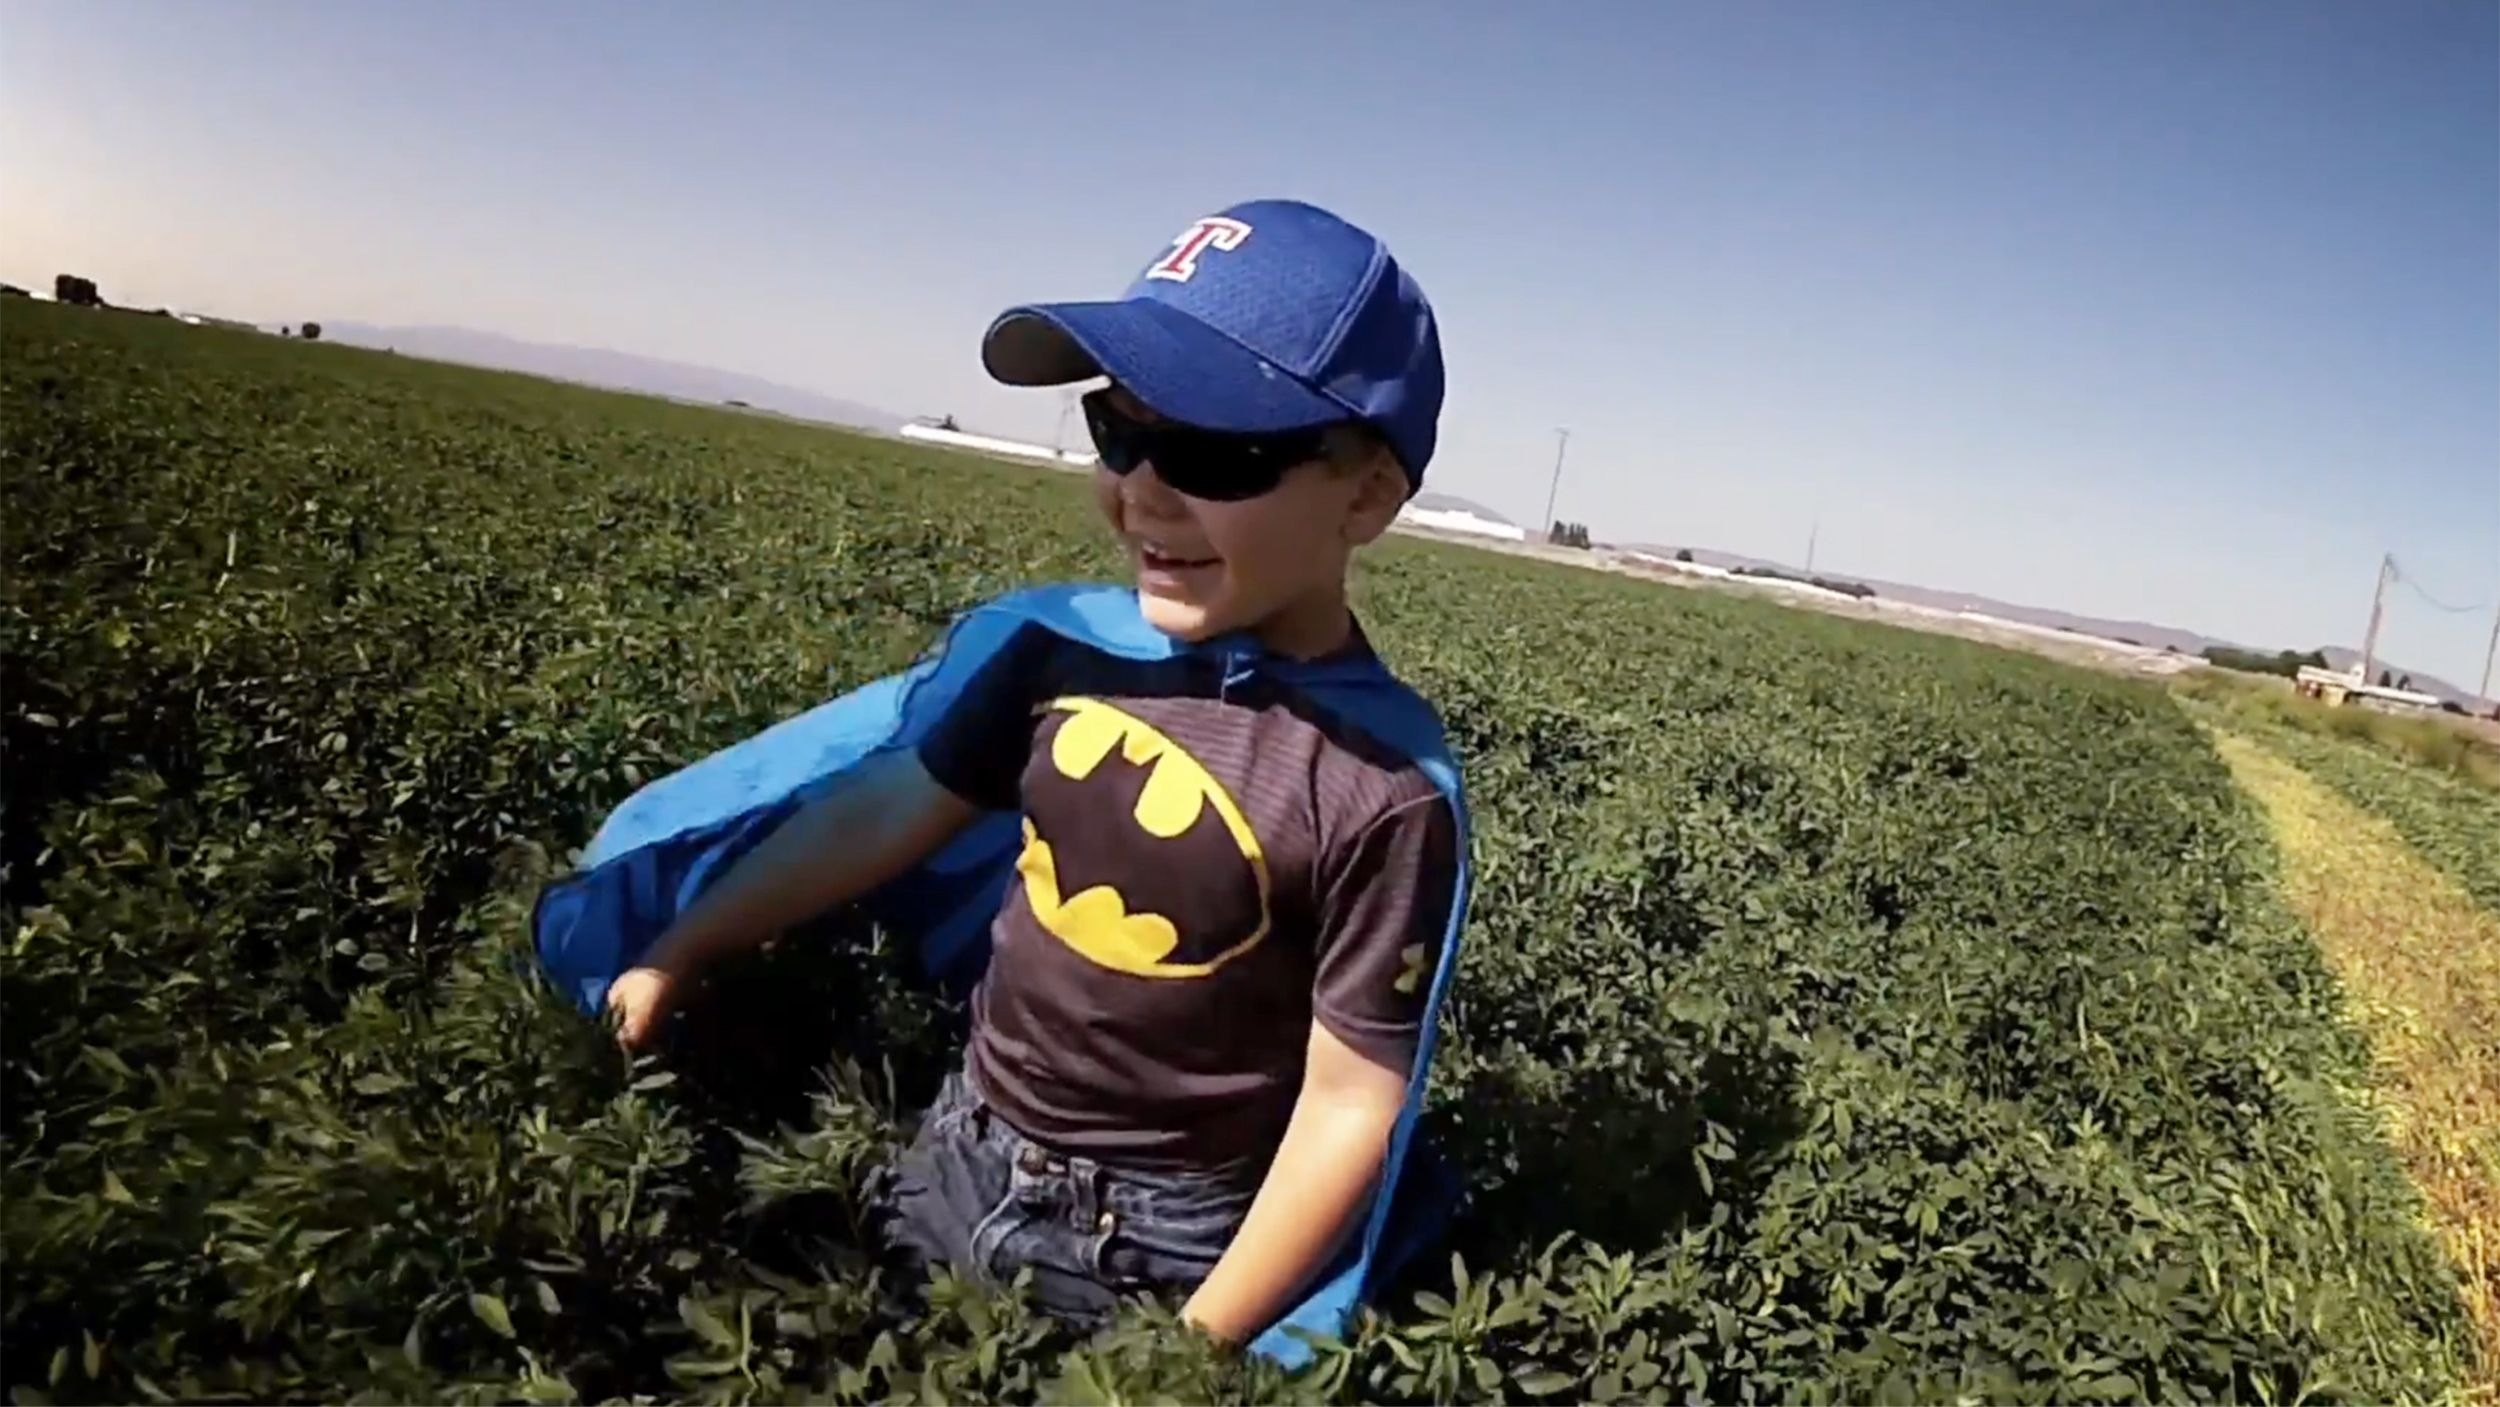 Pow! Fresh footage unveiled for 'Batkid Begins' at Comic-Con